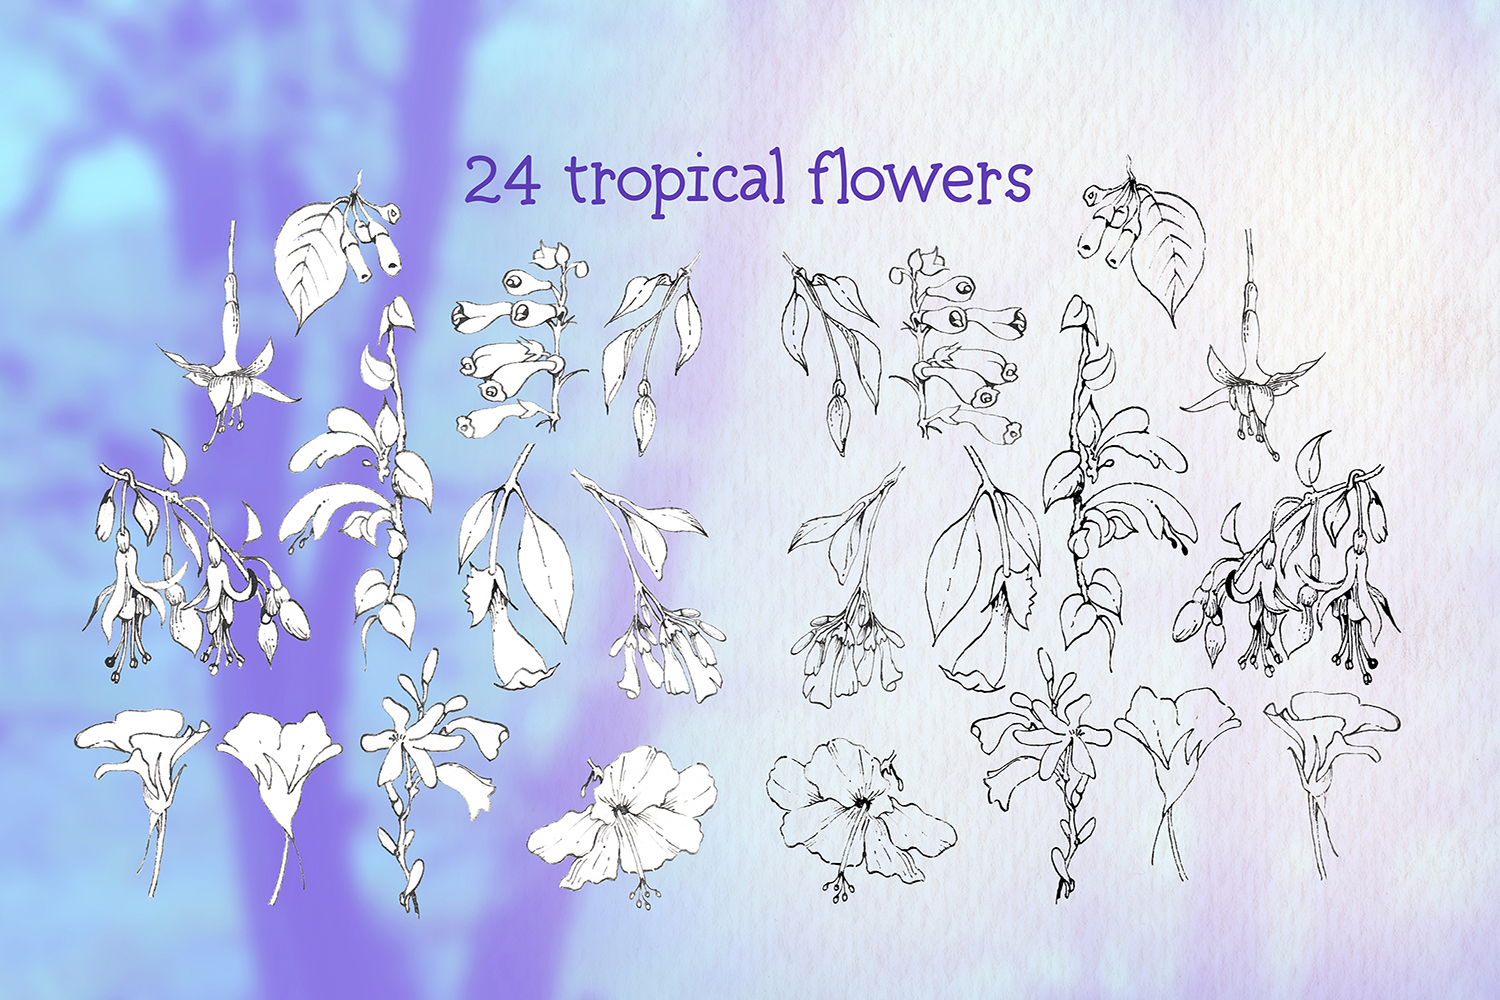 hummingbirds & tropical flowers watercolor clipart example image 7